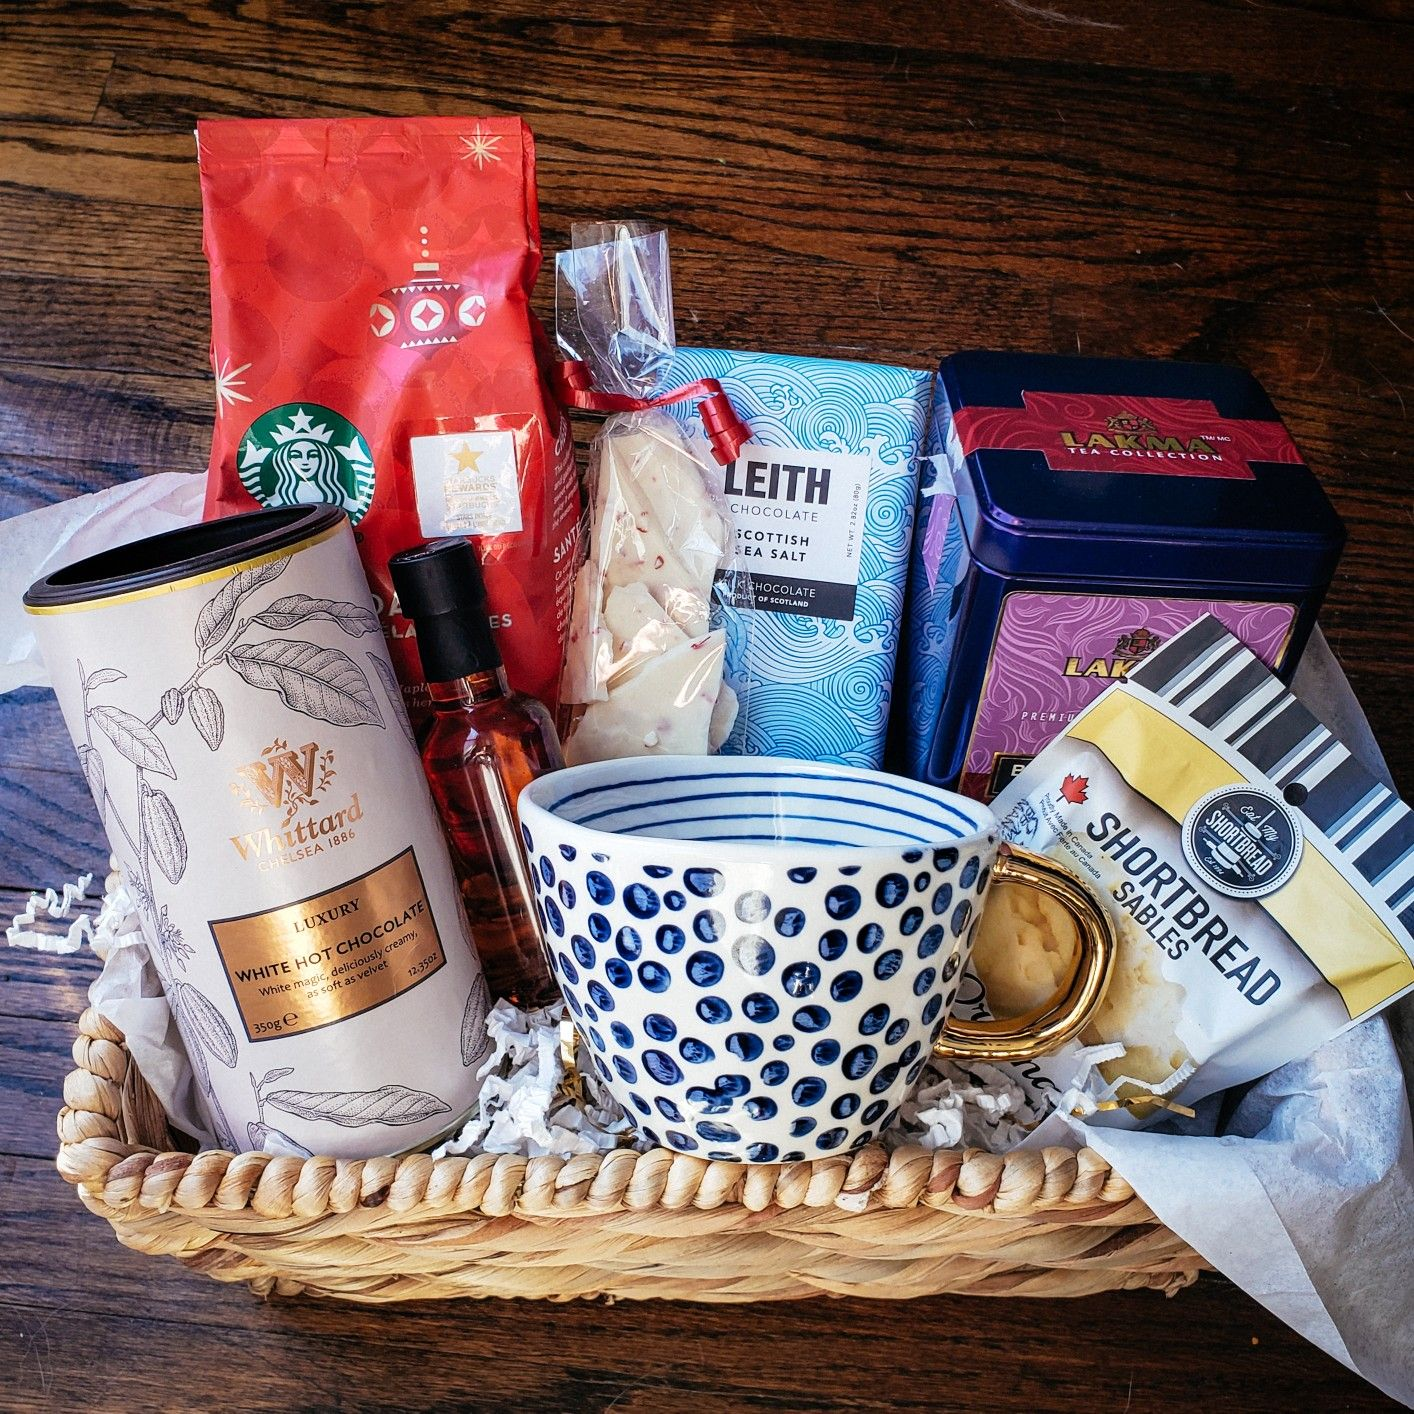 Speciality coffee gift basket. Starbucks coffee kit